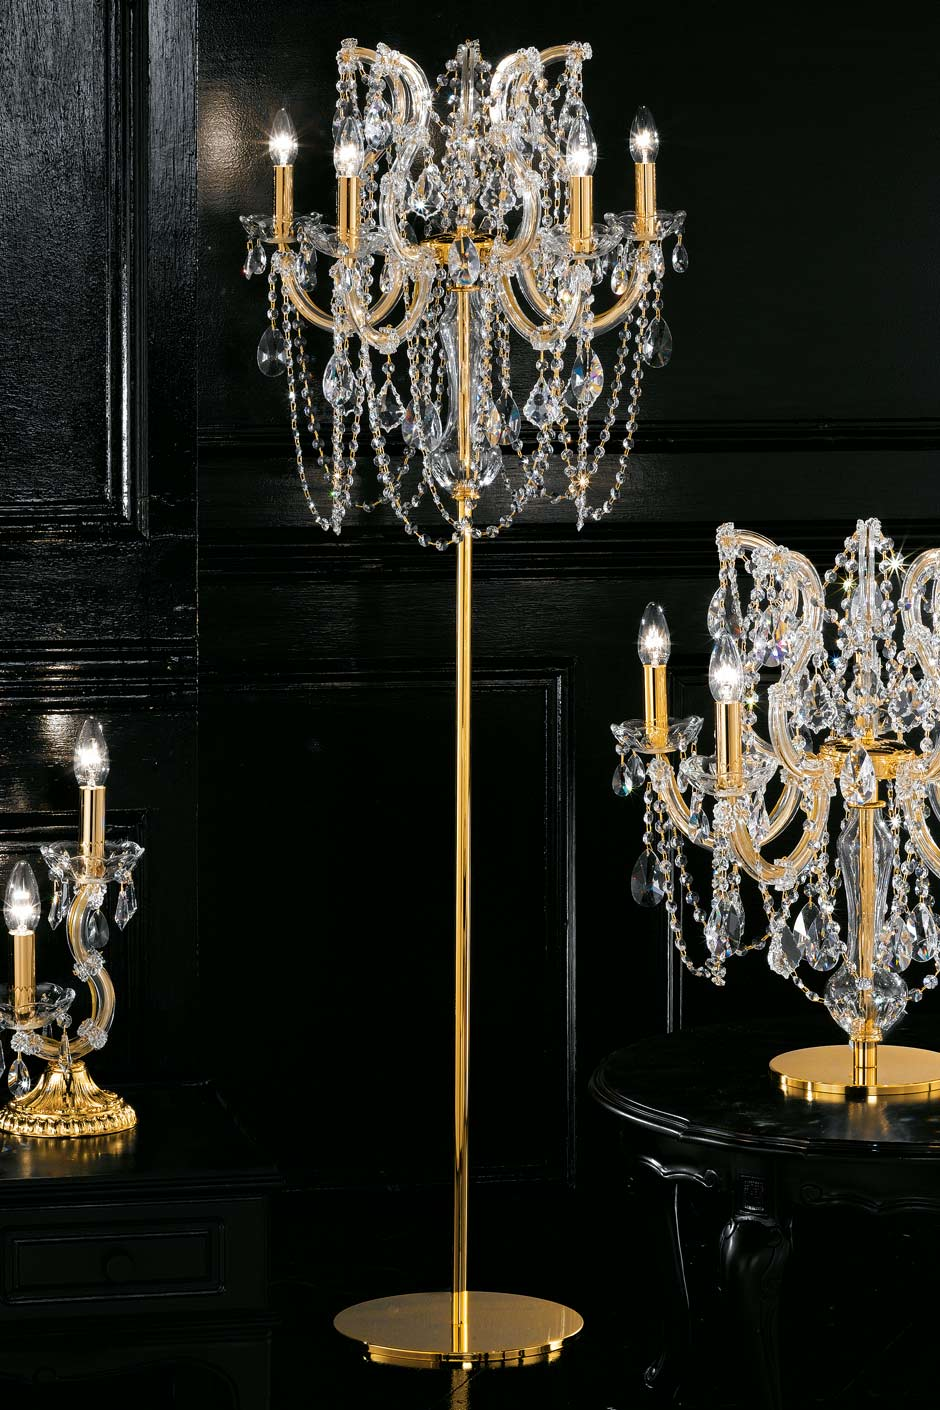 lampadaire bougeoir cristal et m tal dor masiero. Black Bedroom Furniture Sets. Home Design Ideas